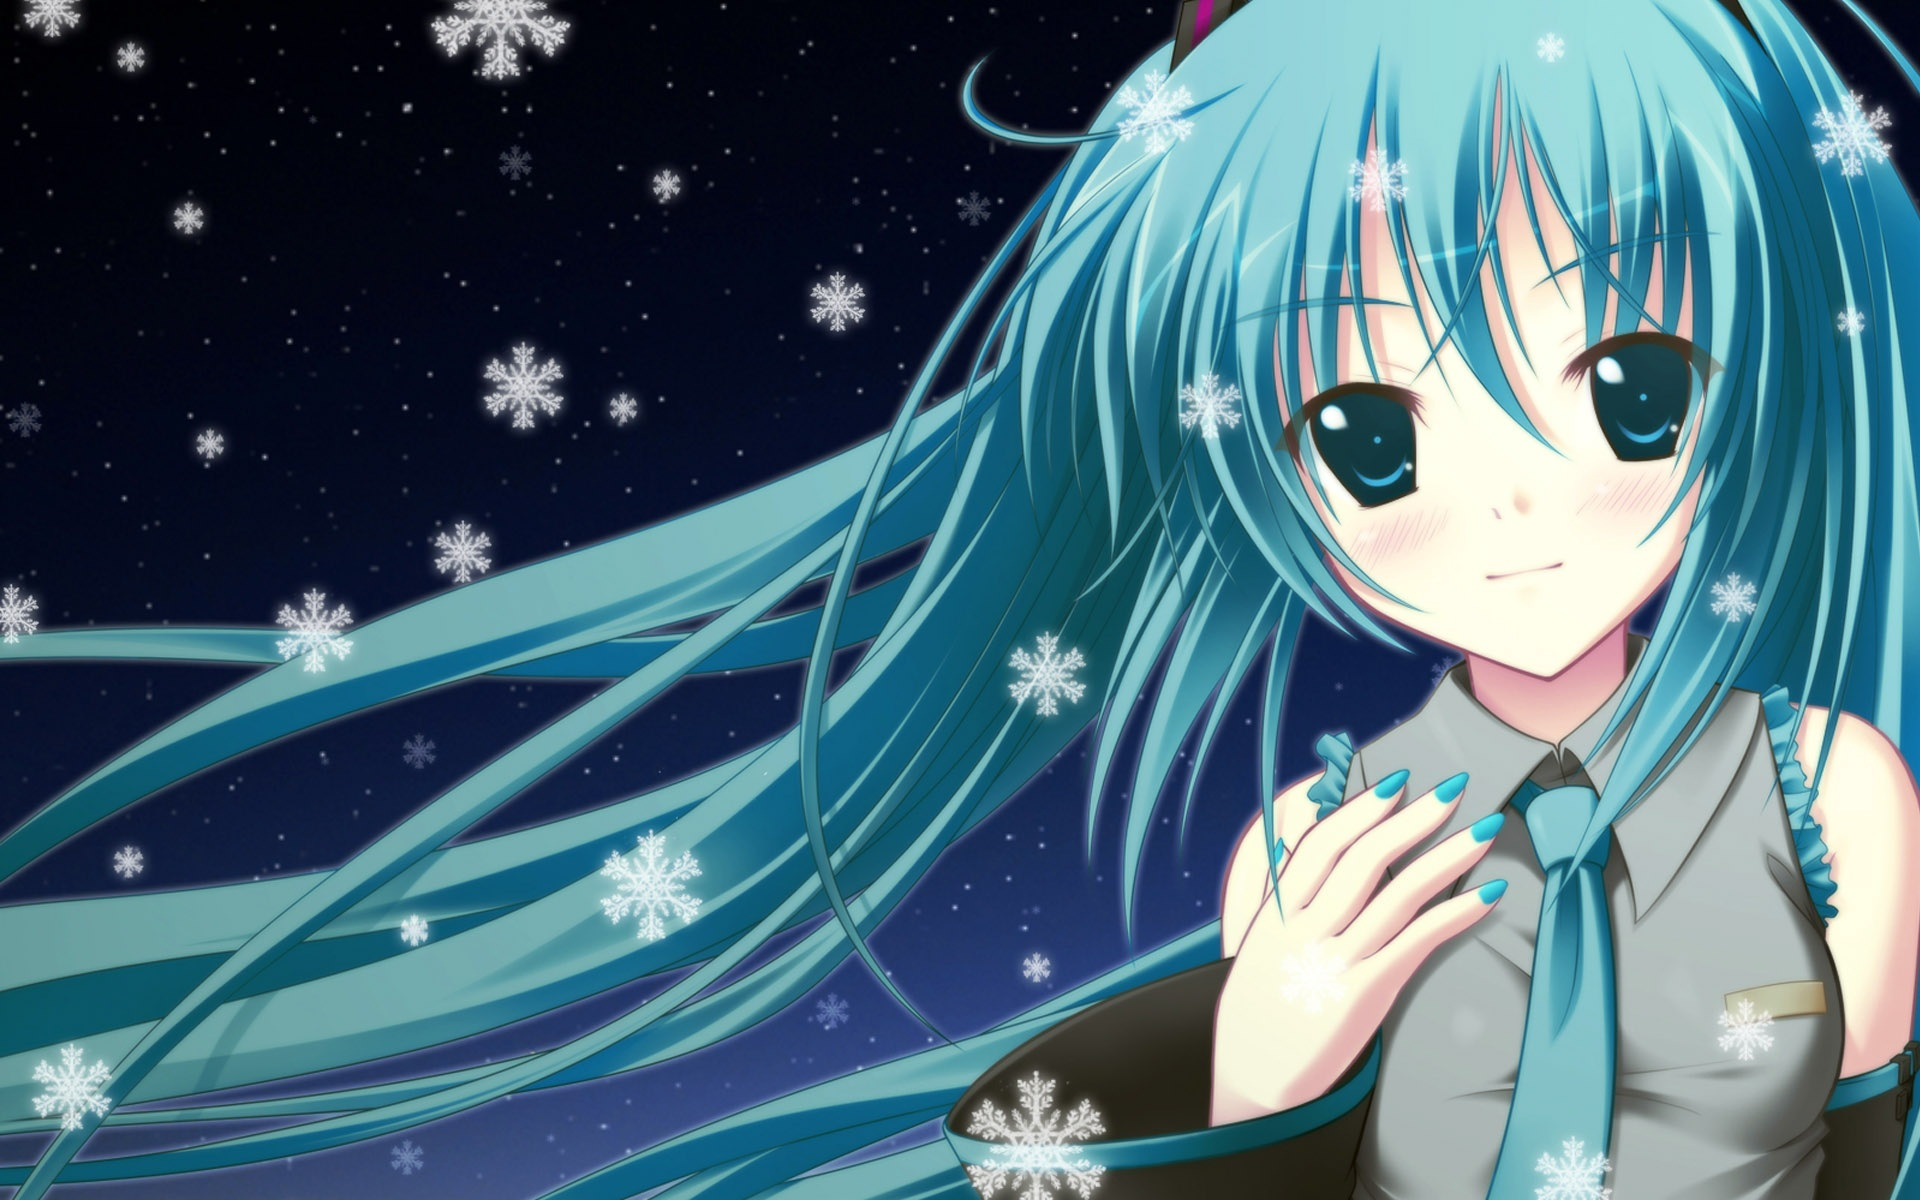 anime girl wallpaper 1920x1200 wallpaper download blue hair anime girl ...